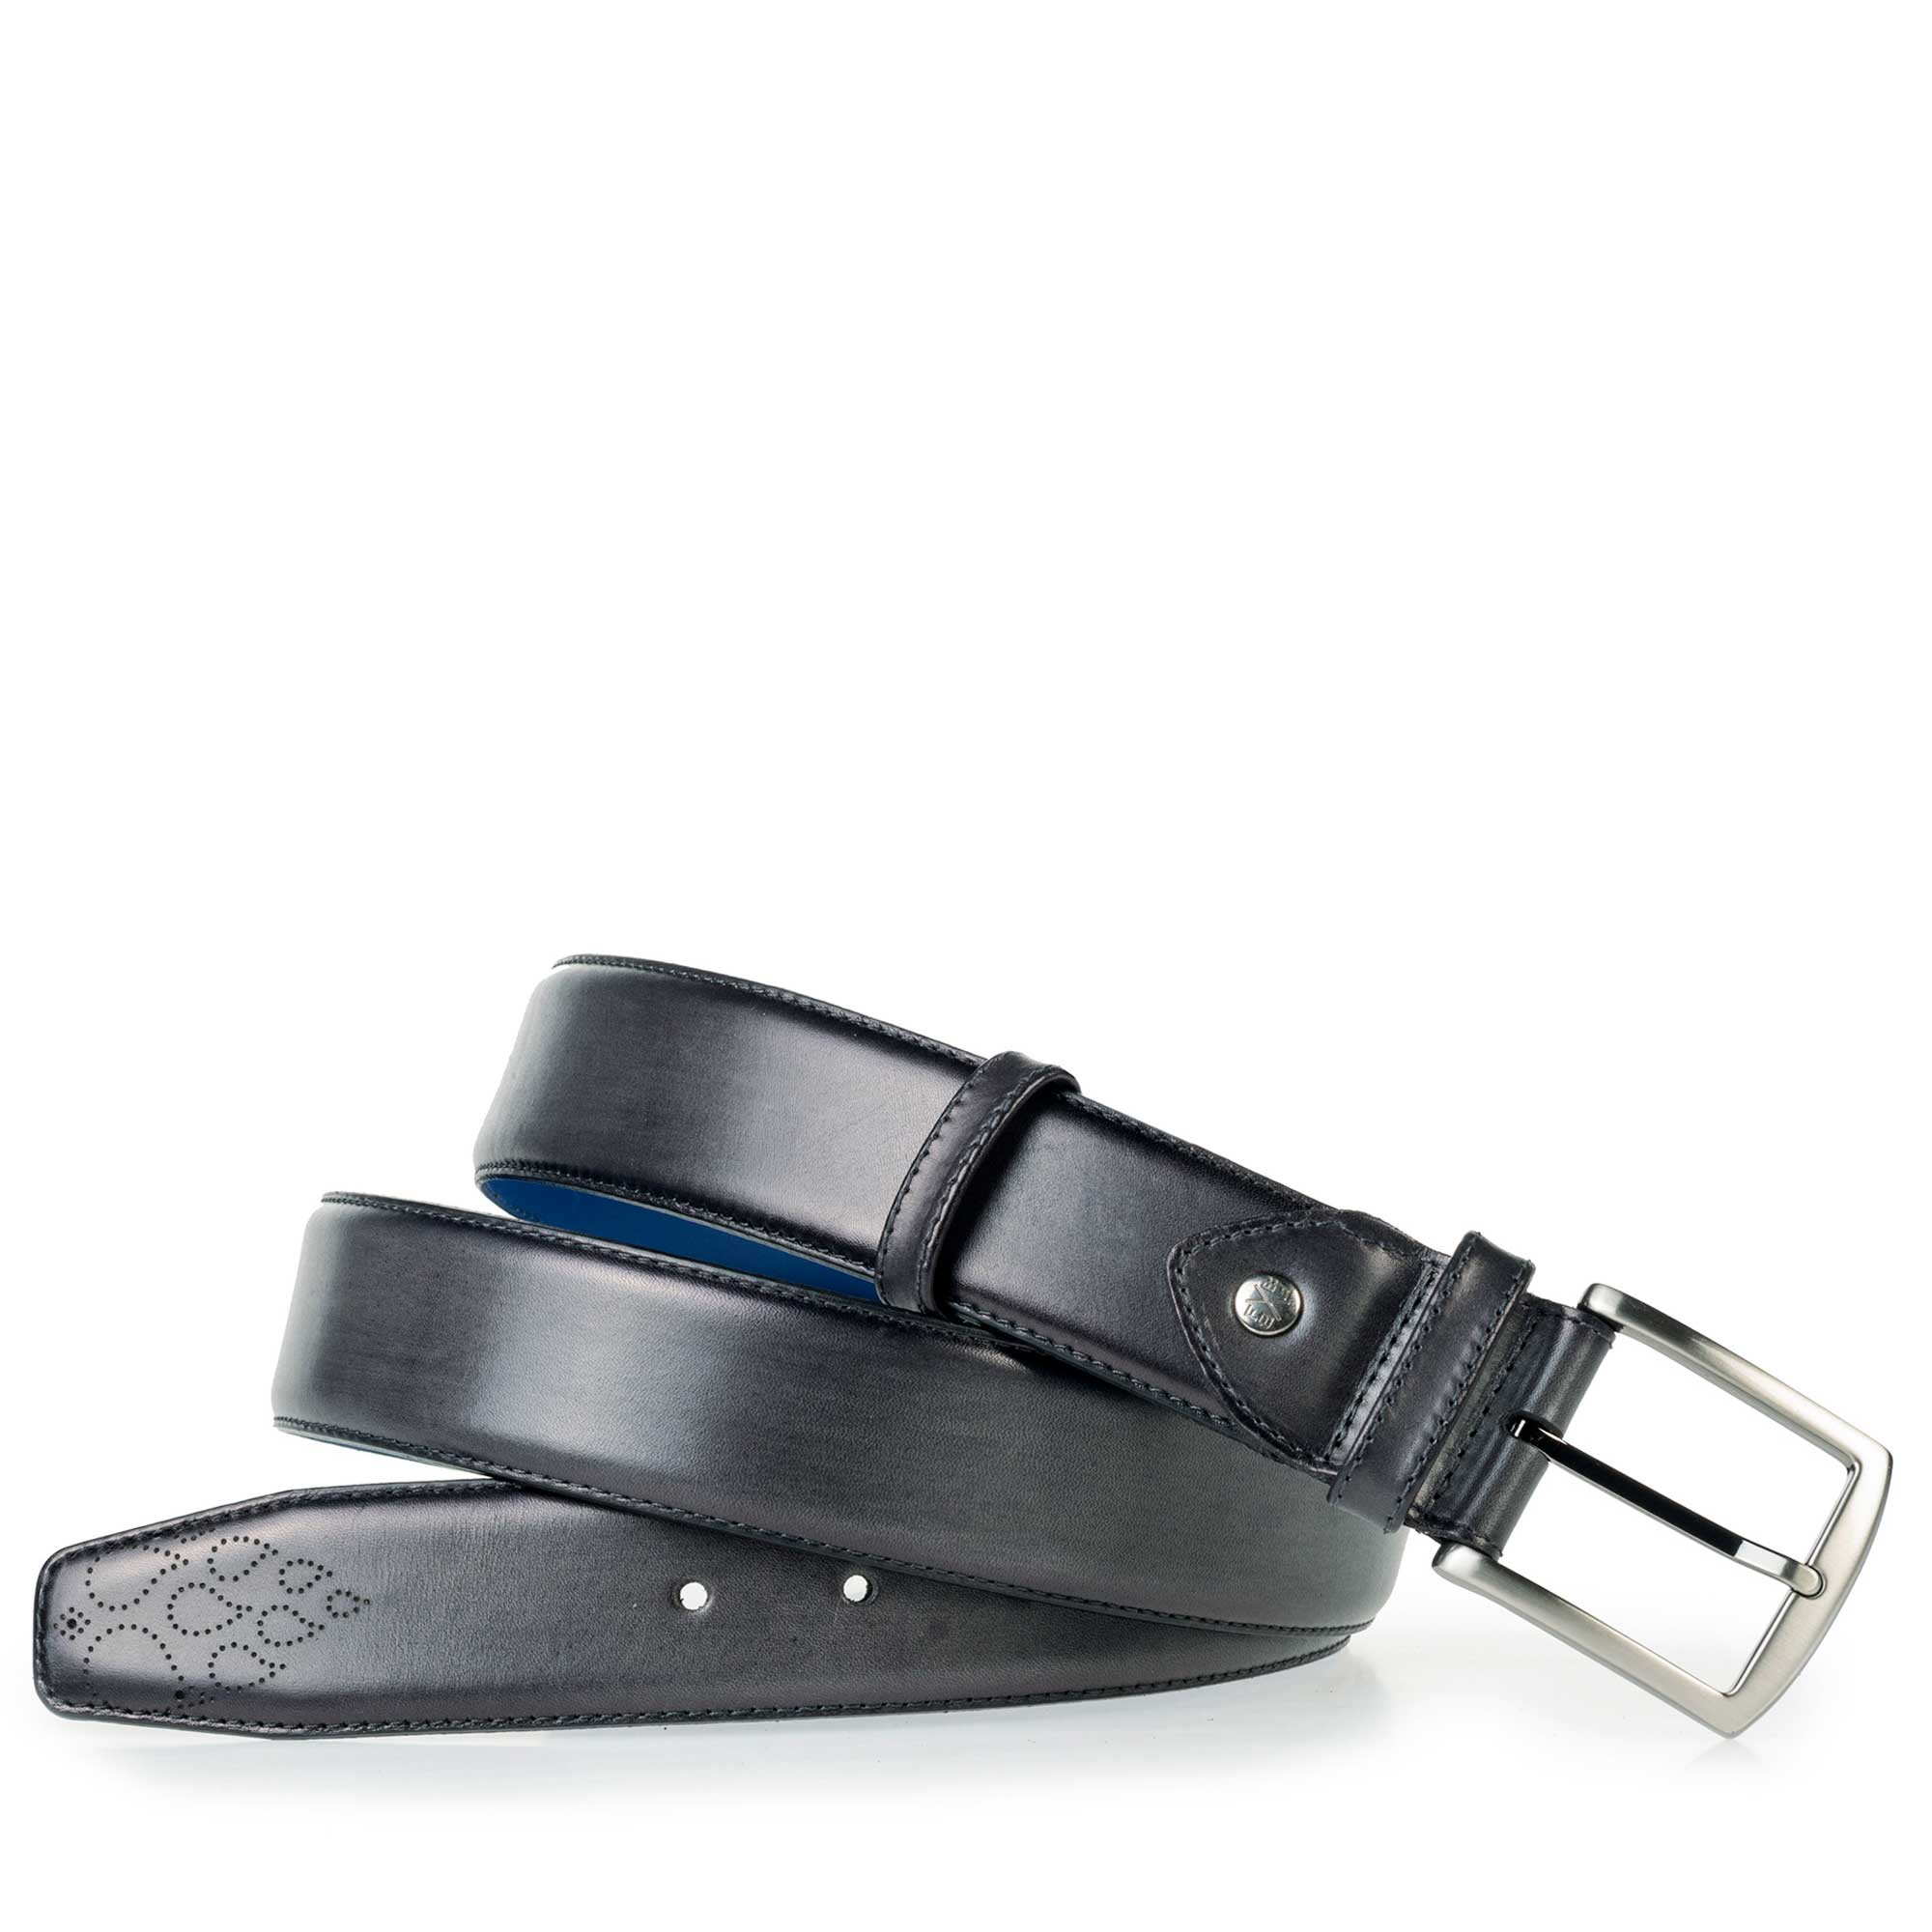 75174/00 - Floris van Bommel grey leather men's belt